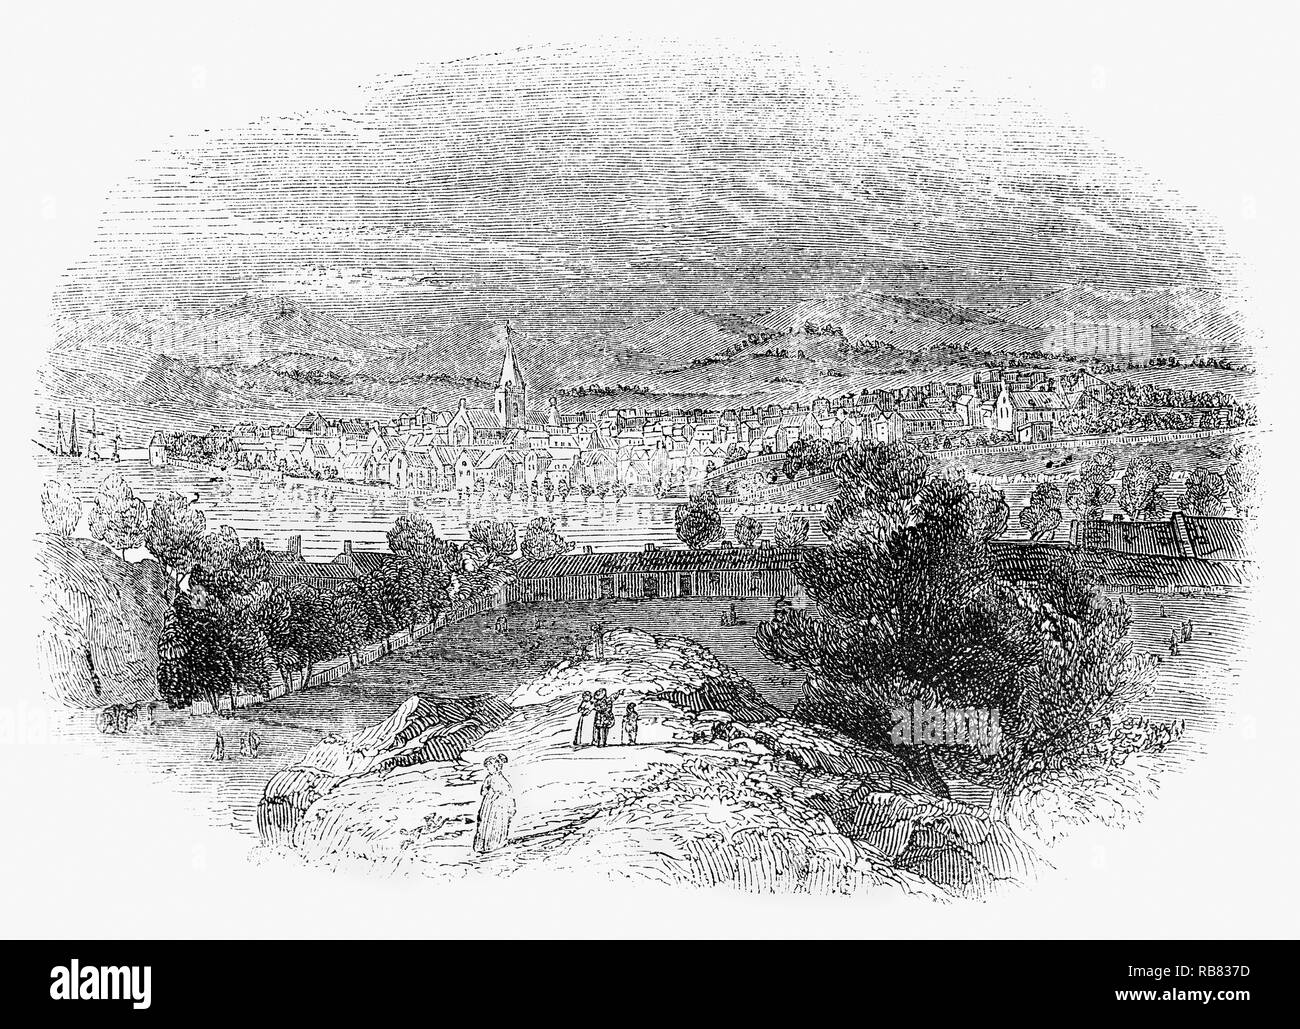 Perth in central Scotland, located on the banks of the River Tay.  The city was occupied by Jacobite supporters in 1715 and 1745). The founding of Perth Academy in 1760 helped to bring major industries, such as linen, leather, bleach and whisky, to the city. - Stock Image